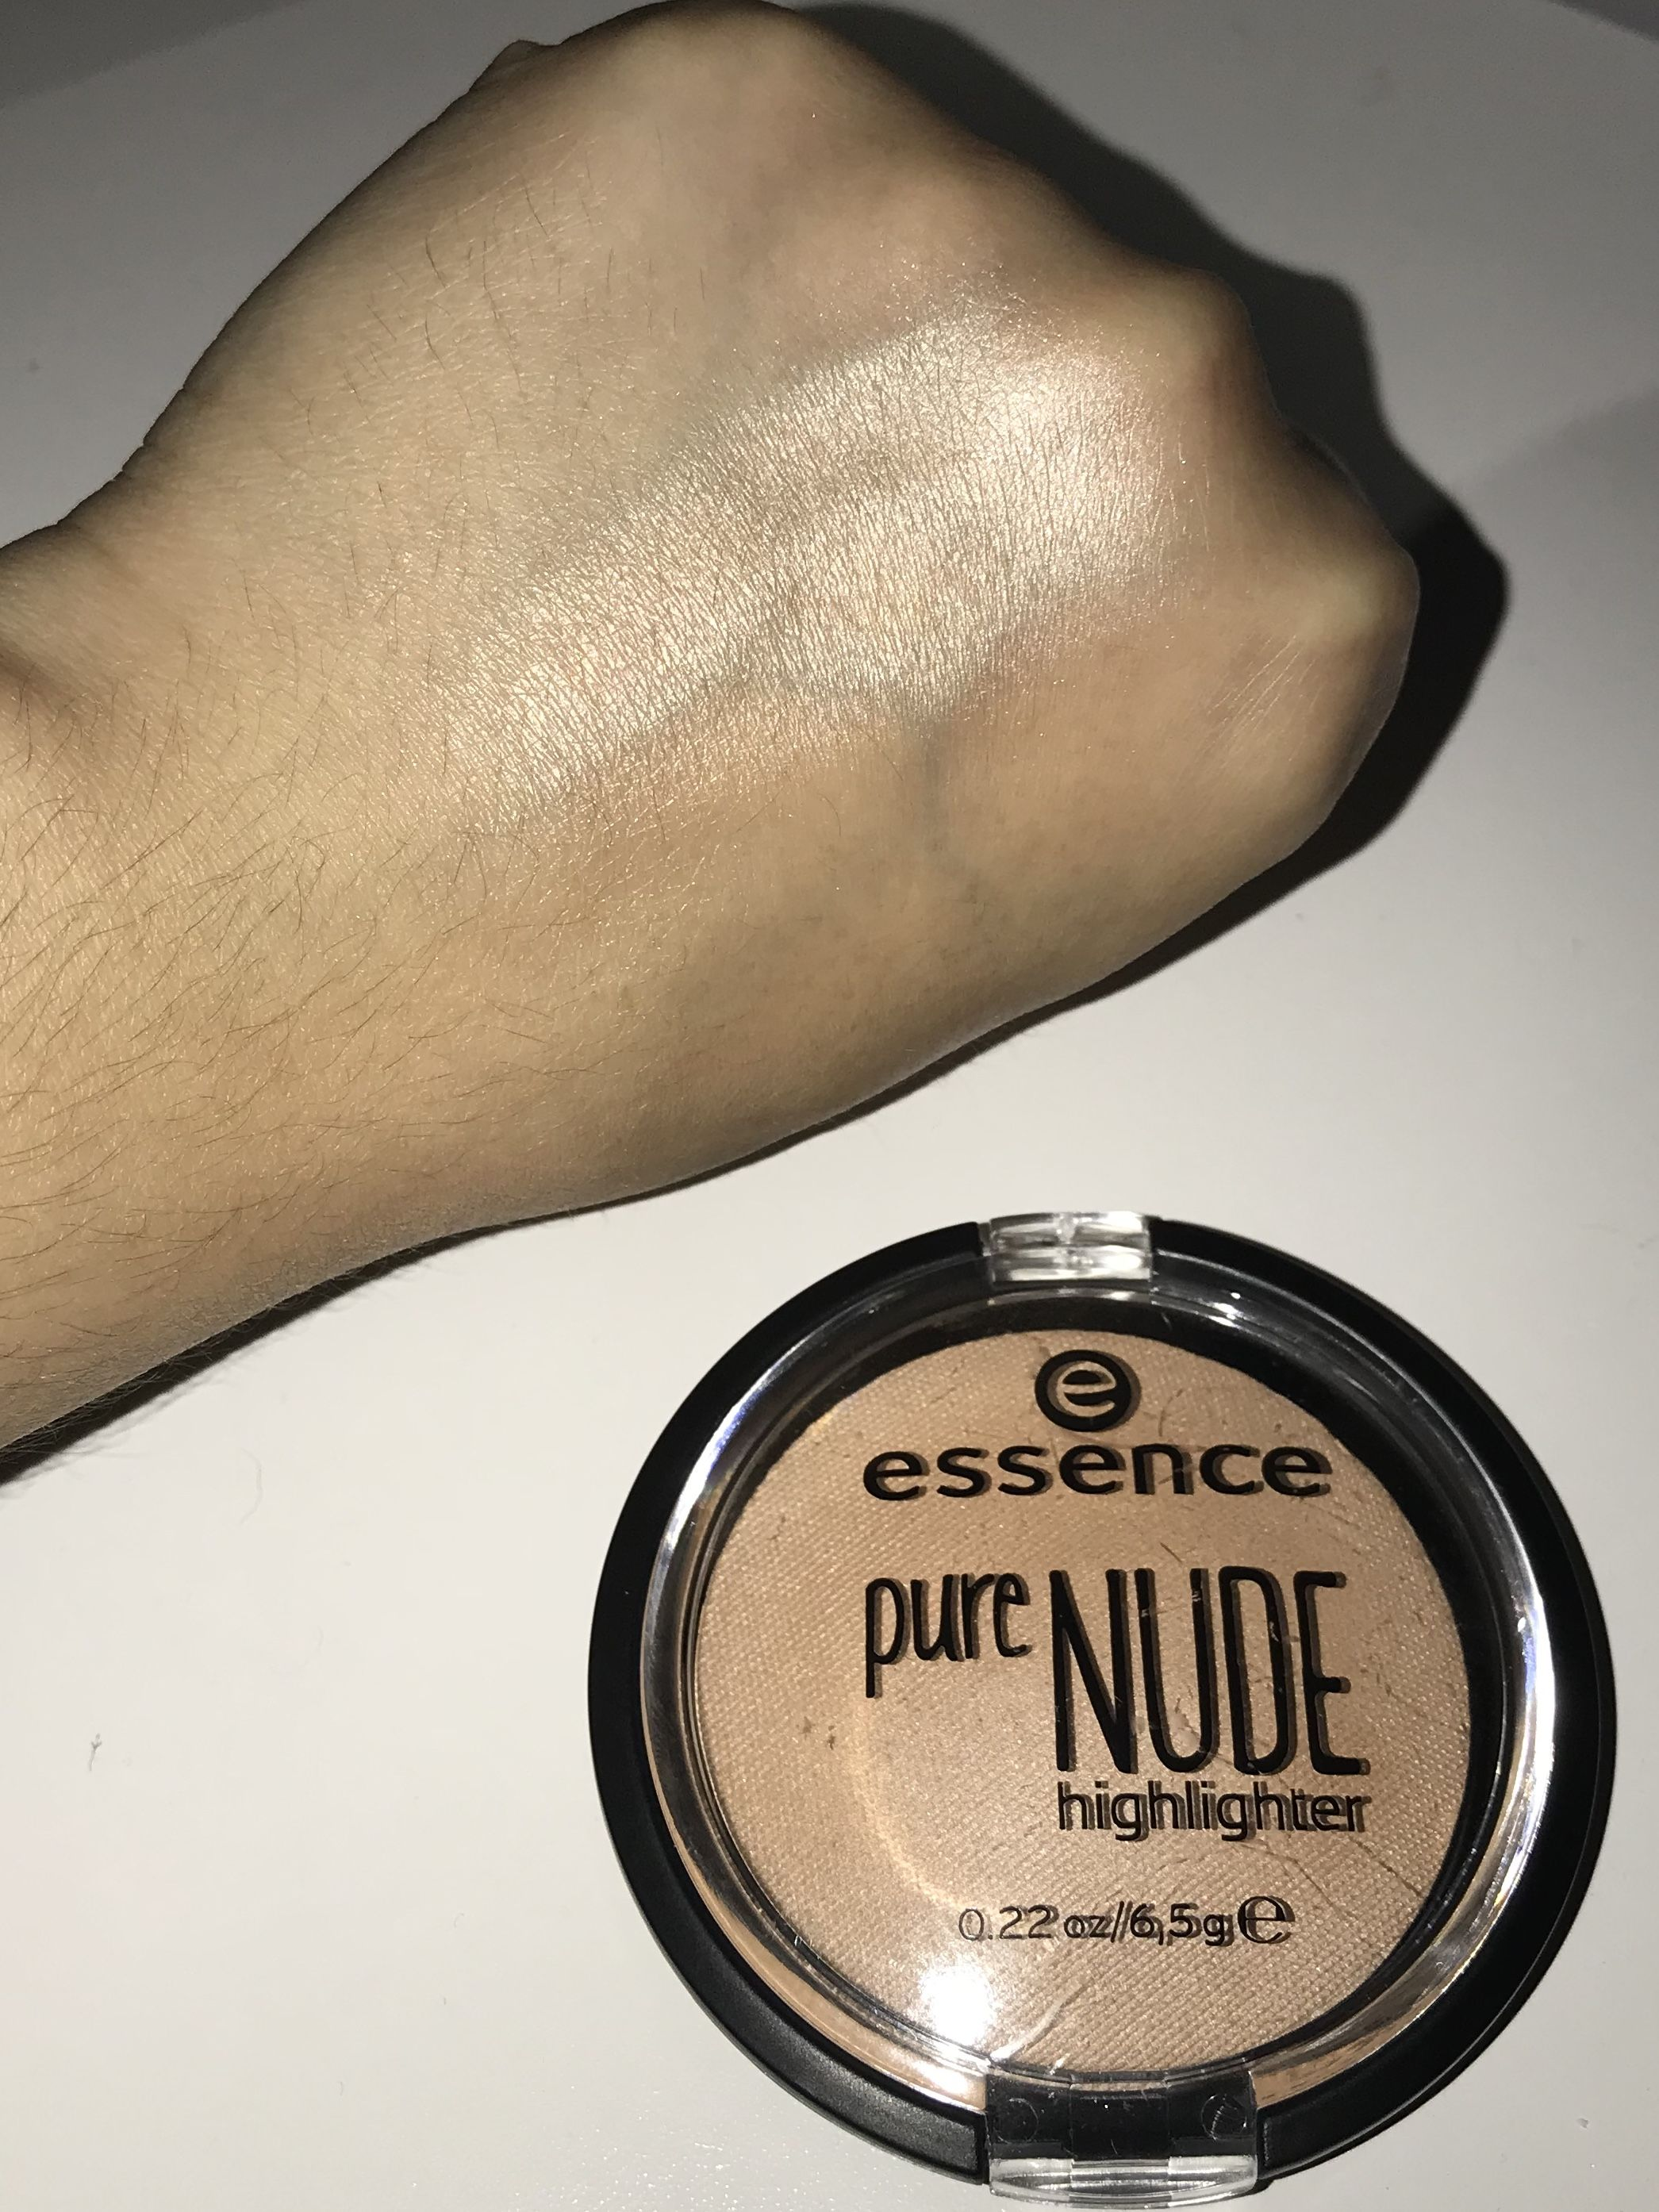 De beste highlighter van dit moment